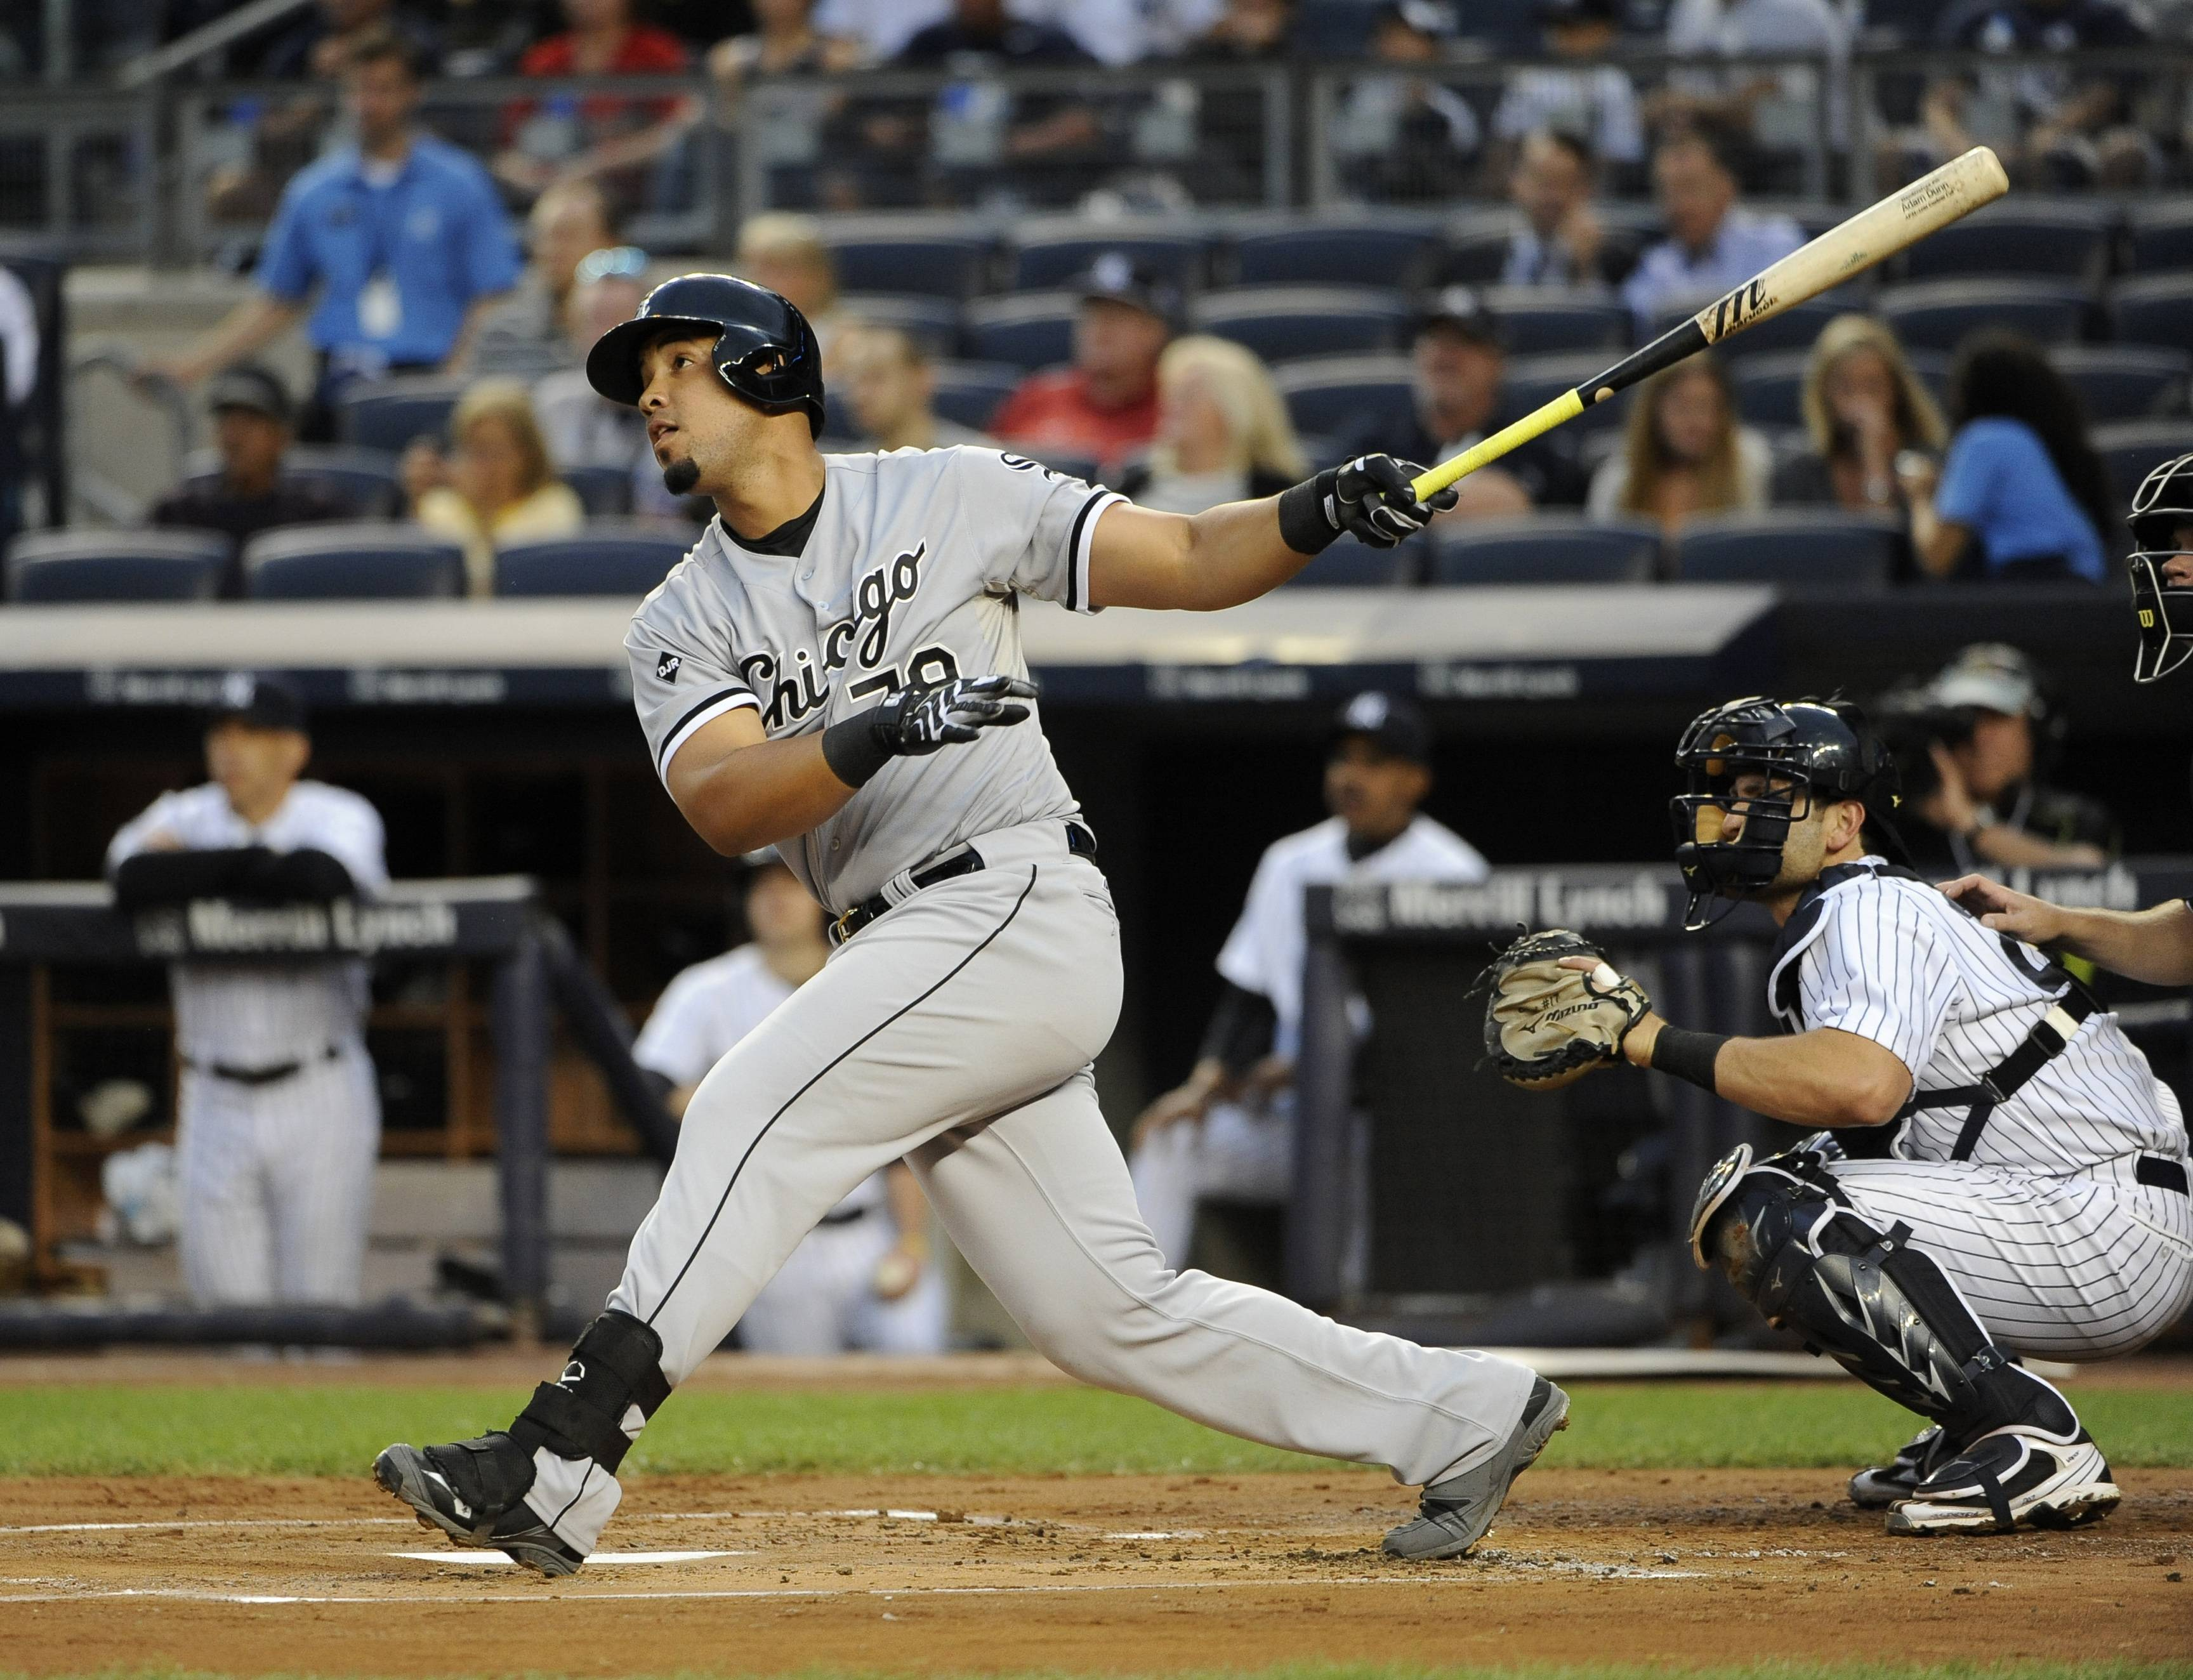 Chicago White Sox's Jose Abreu watches his three-run home run off New York Yankees starting pitcher Shane Greene as Francisco Cervelli catches for the Yankees in the first inning of a baseball game at Yankee Stadium on Friday, Aug. 22, 2014, in New York.